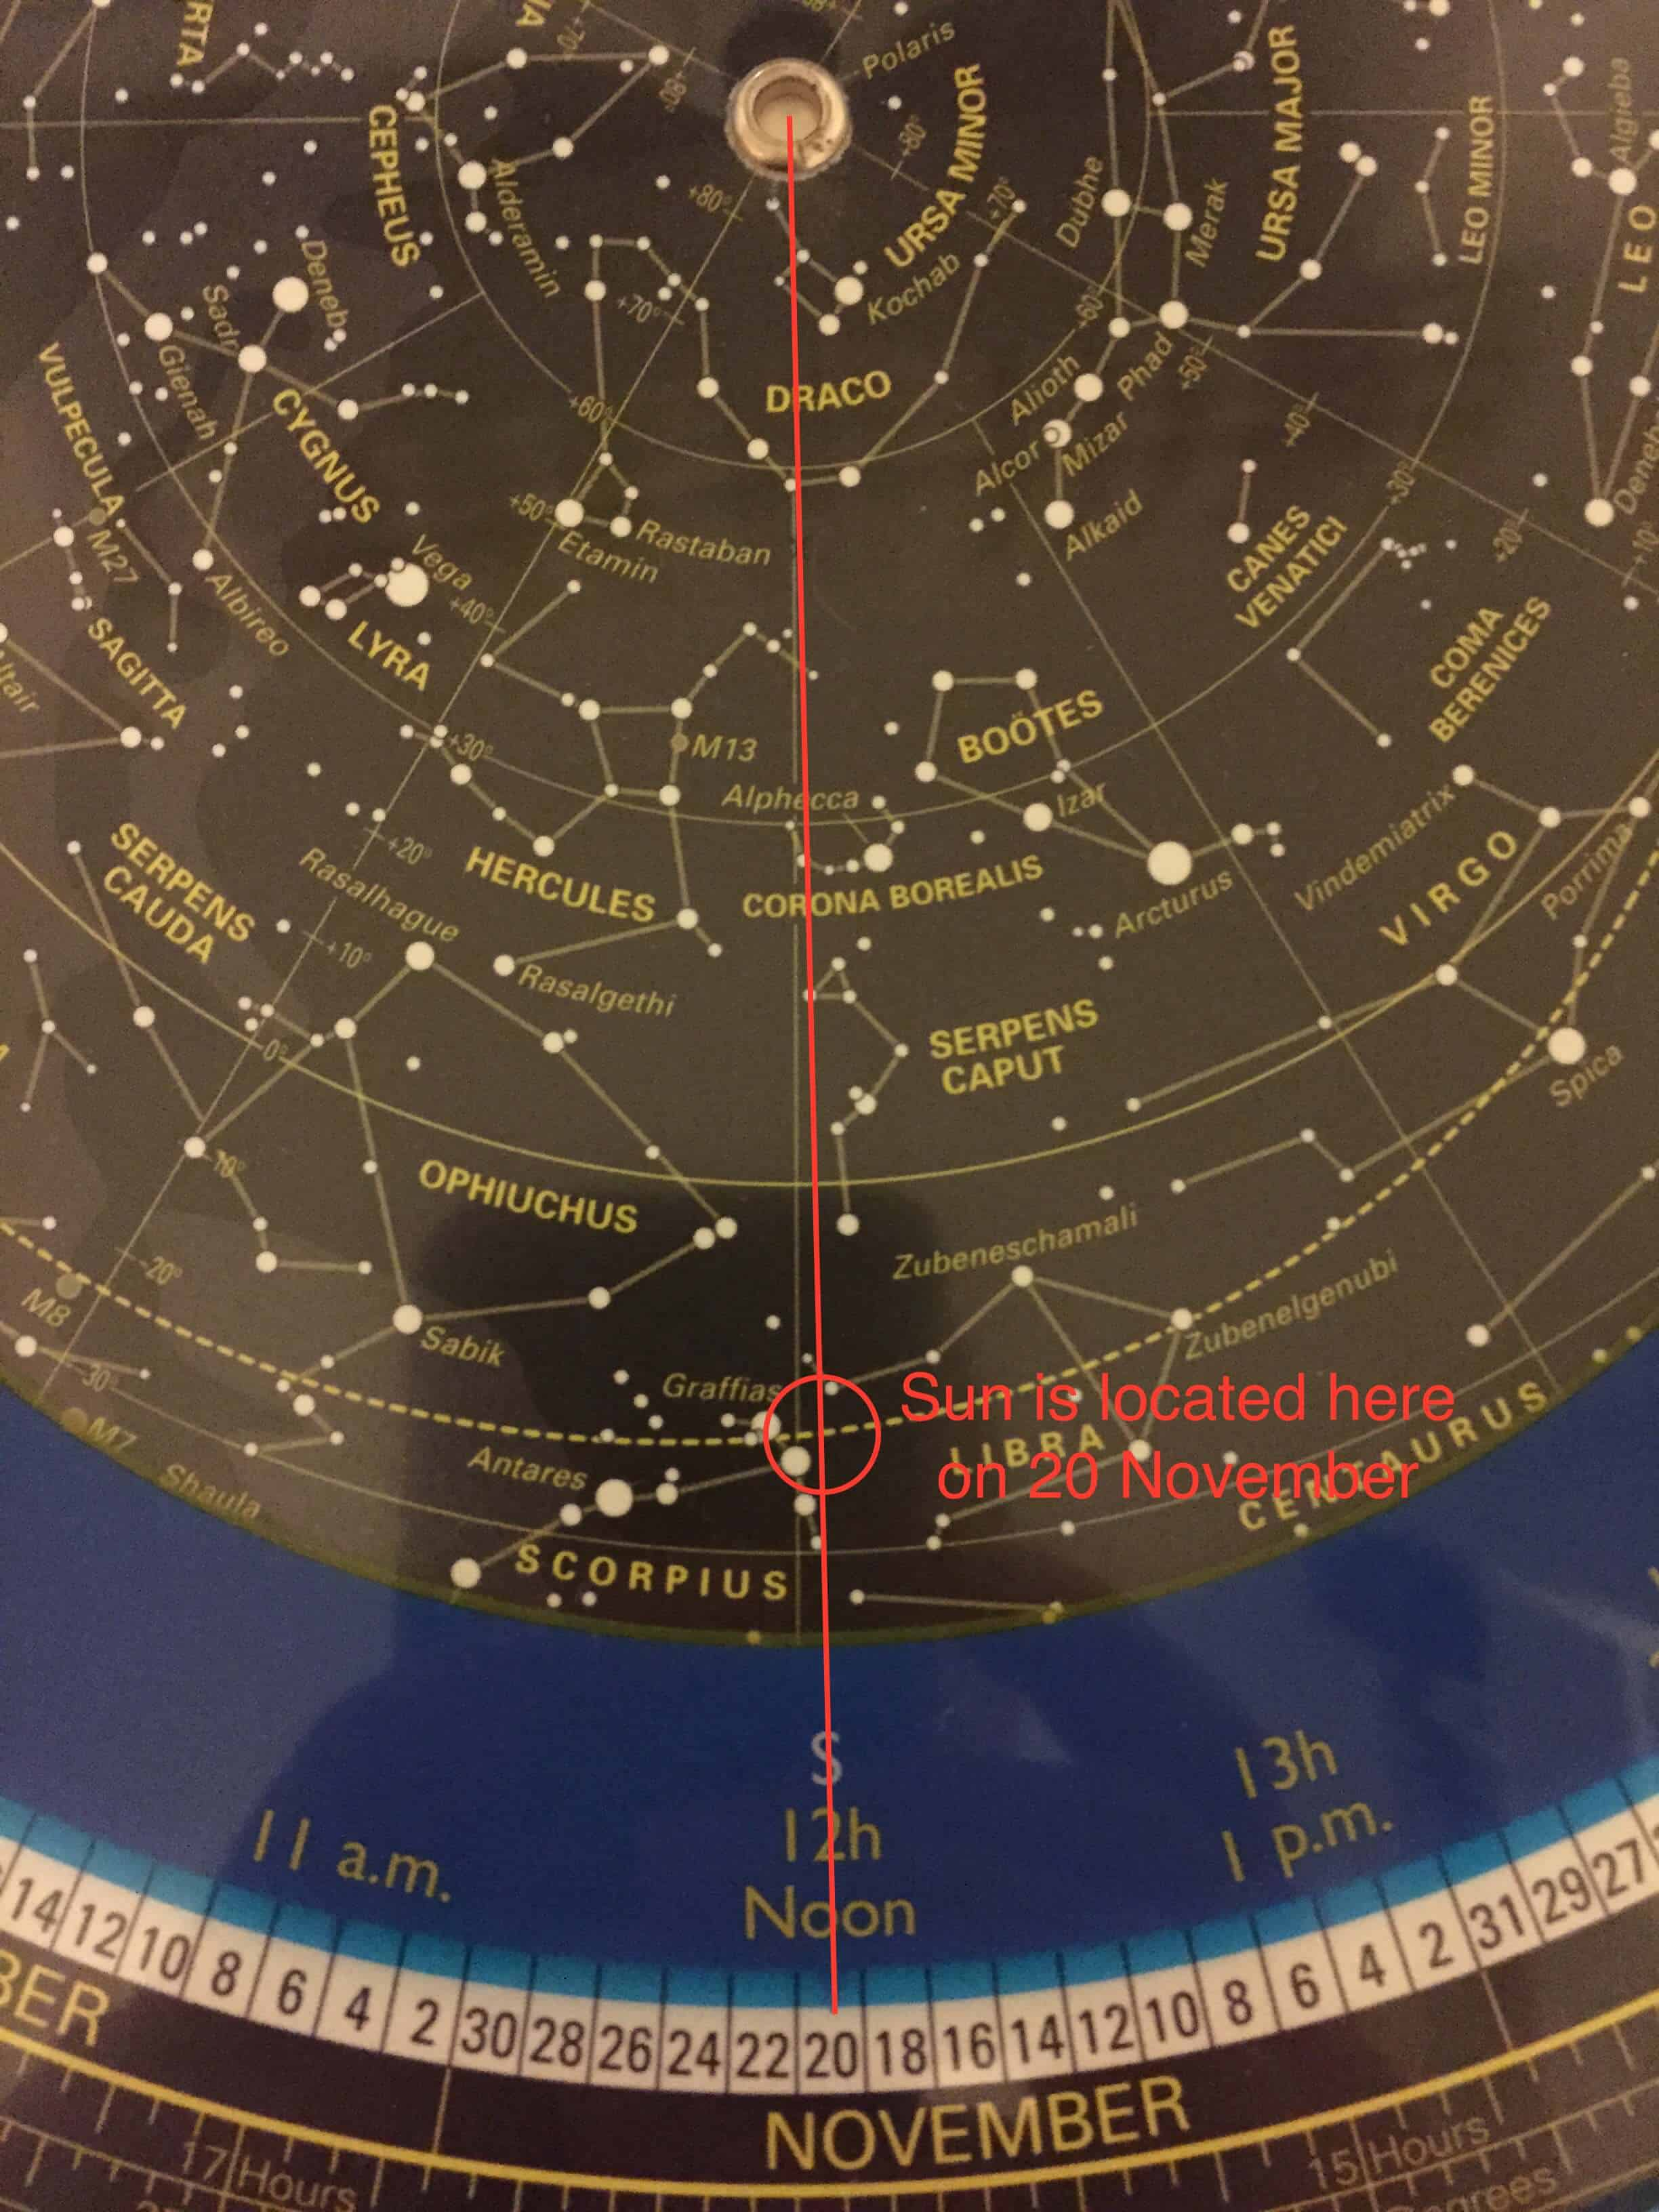 Finding the sun's location using a planisphere